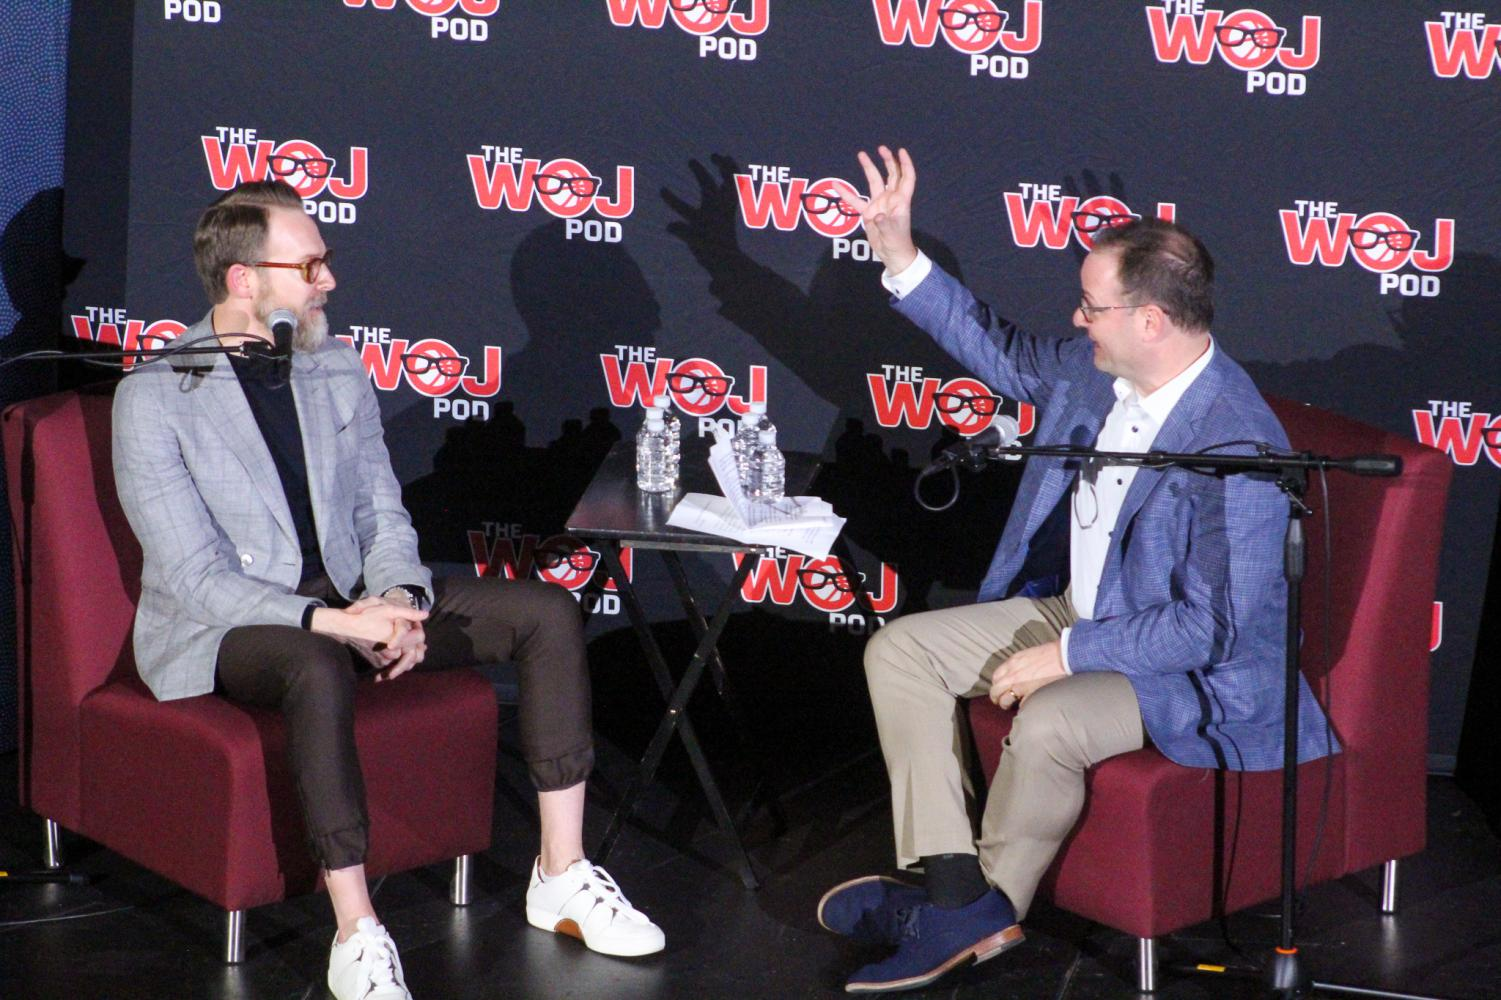 Sam Presti (left) appeared on The Woj Pod with senior NBA insider Adrian Wojnarowski (right).